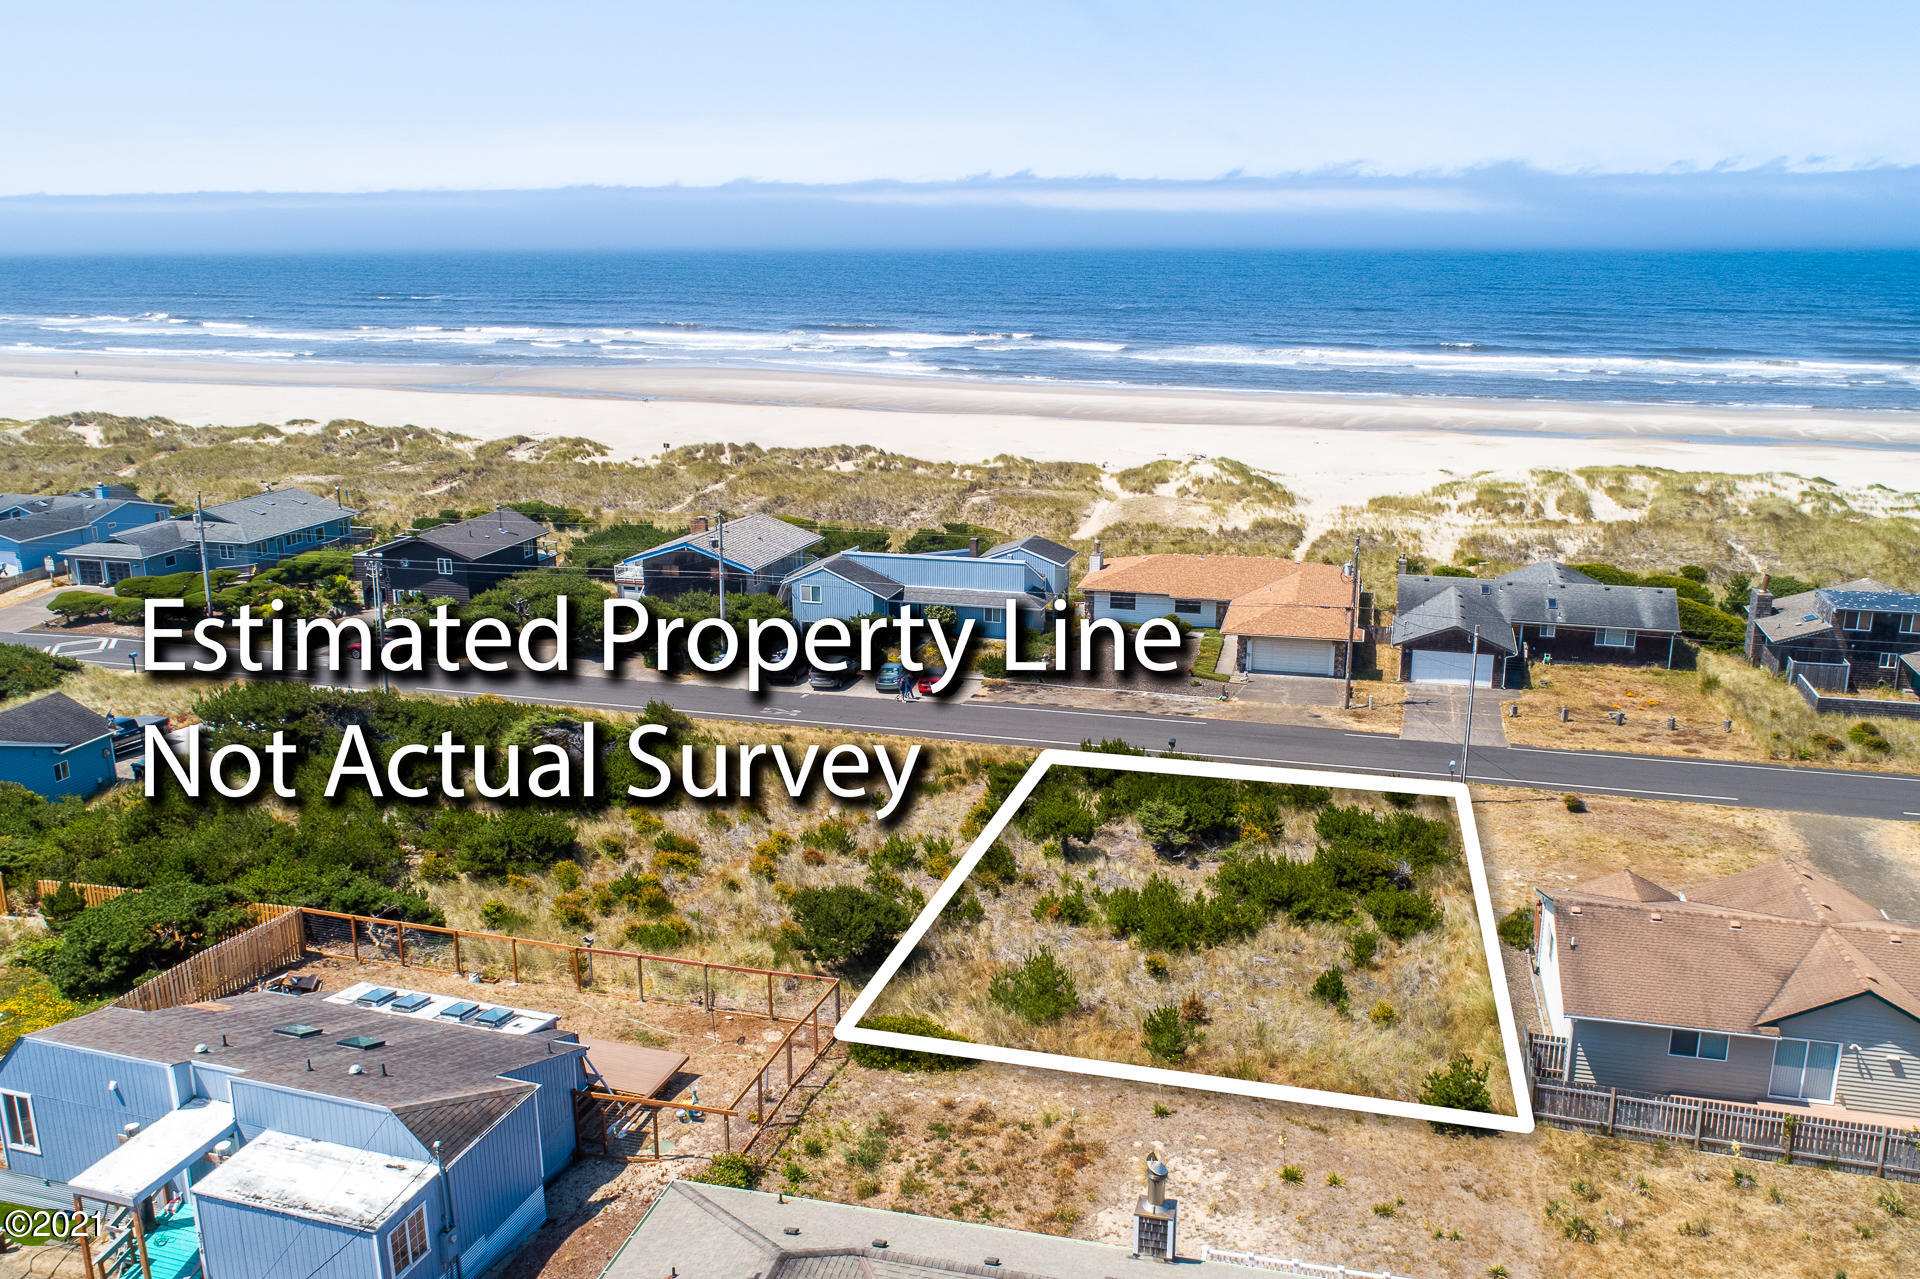 2401 NW Oceania Dr, Waldport, OR 97394 - Property Lines in Relation to the Beach